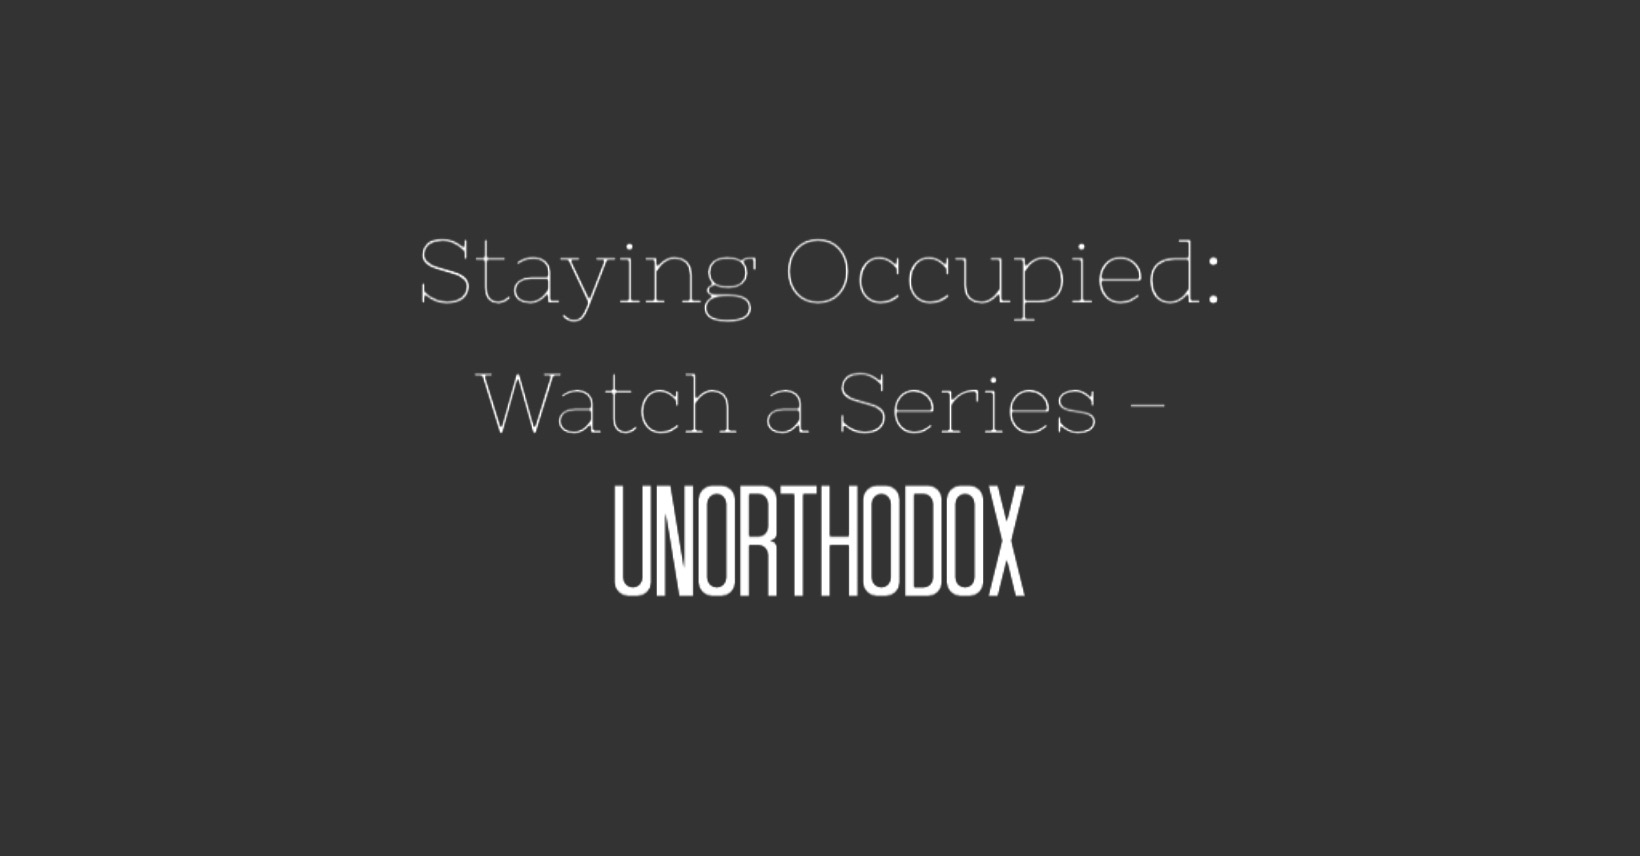 Staying Occupied: Watch a Series - Unorthodox | www.sproutingbalance.com | #stayhome #socialdistancing #bepositive